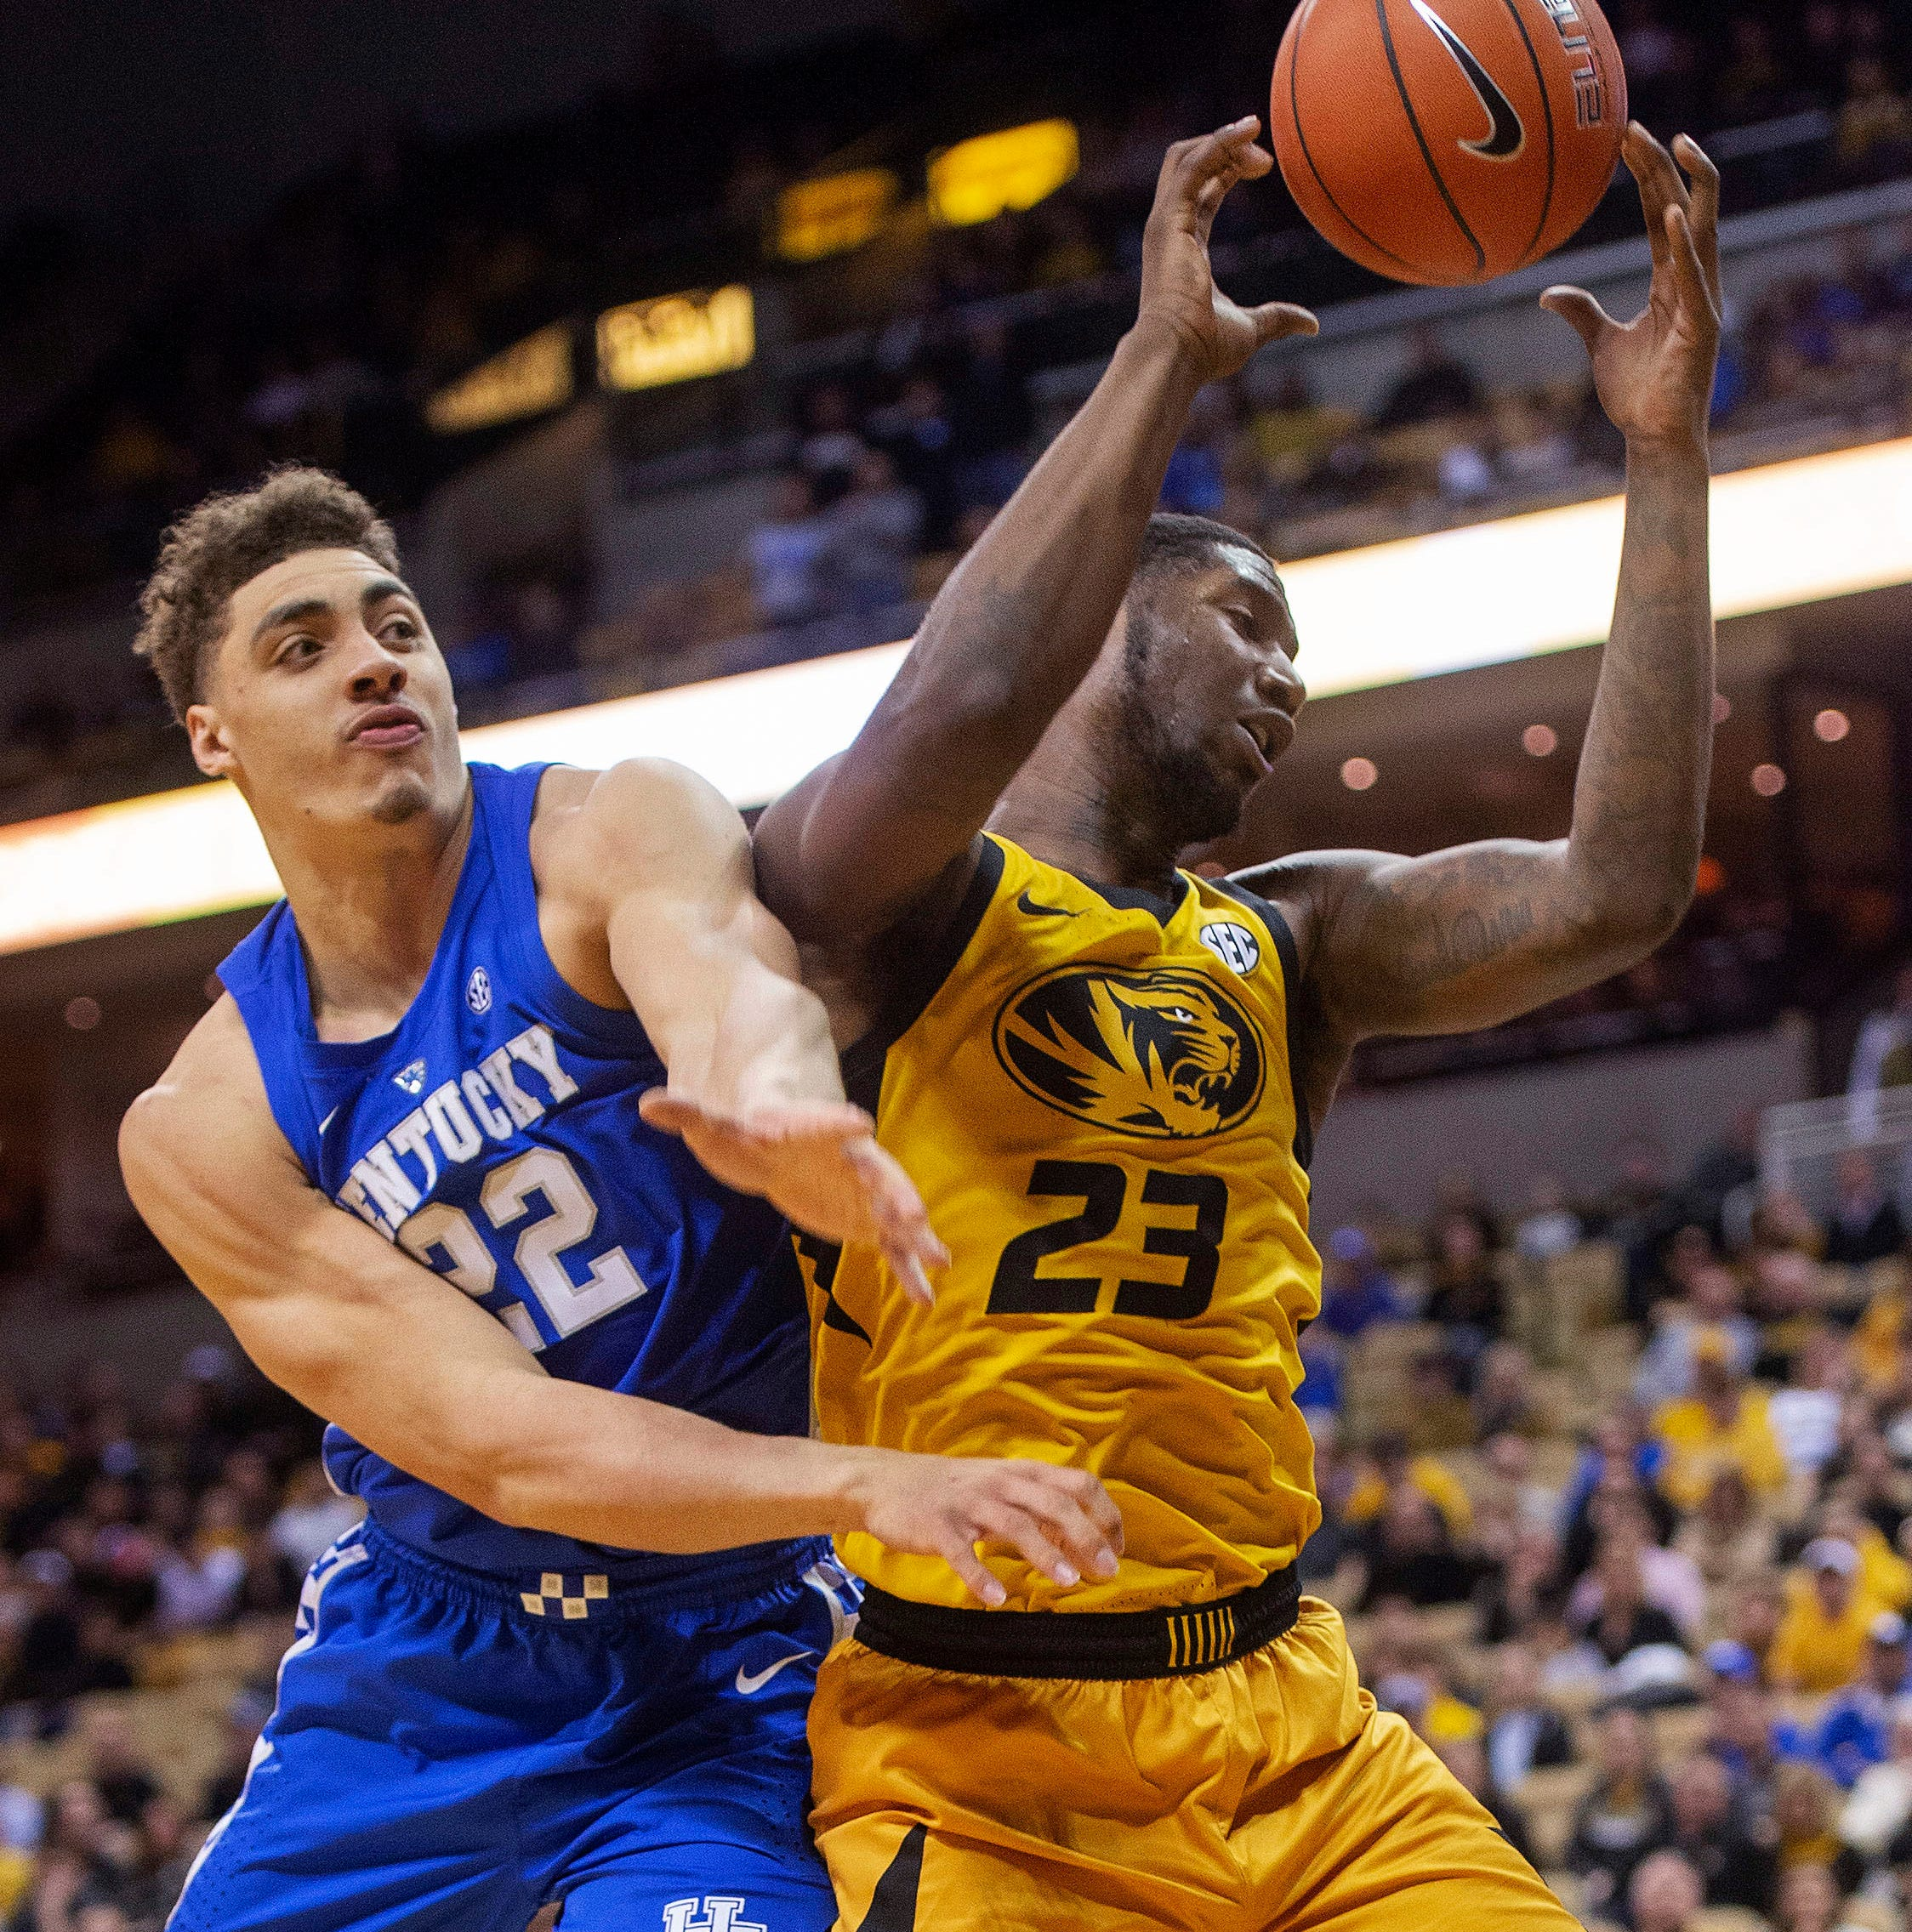 Calipari and Kentucky go into survival mode after Reid Travis injury